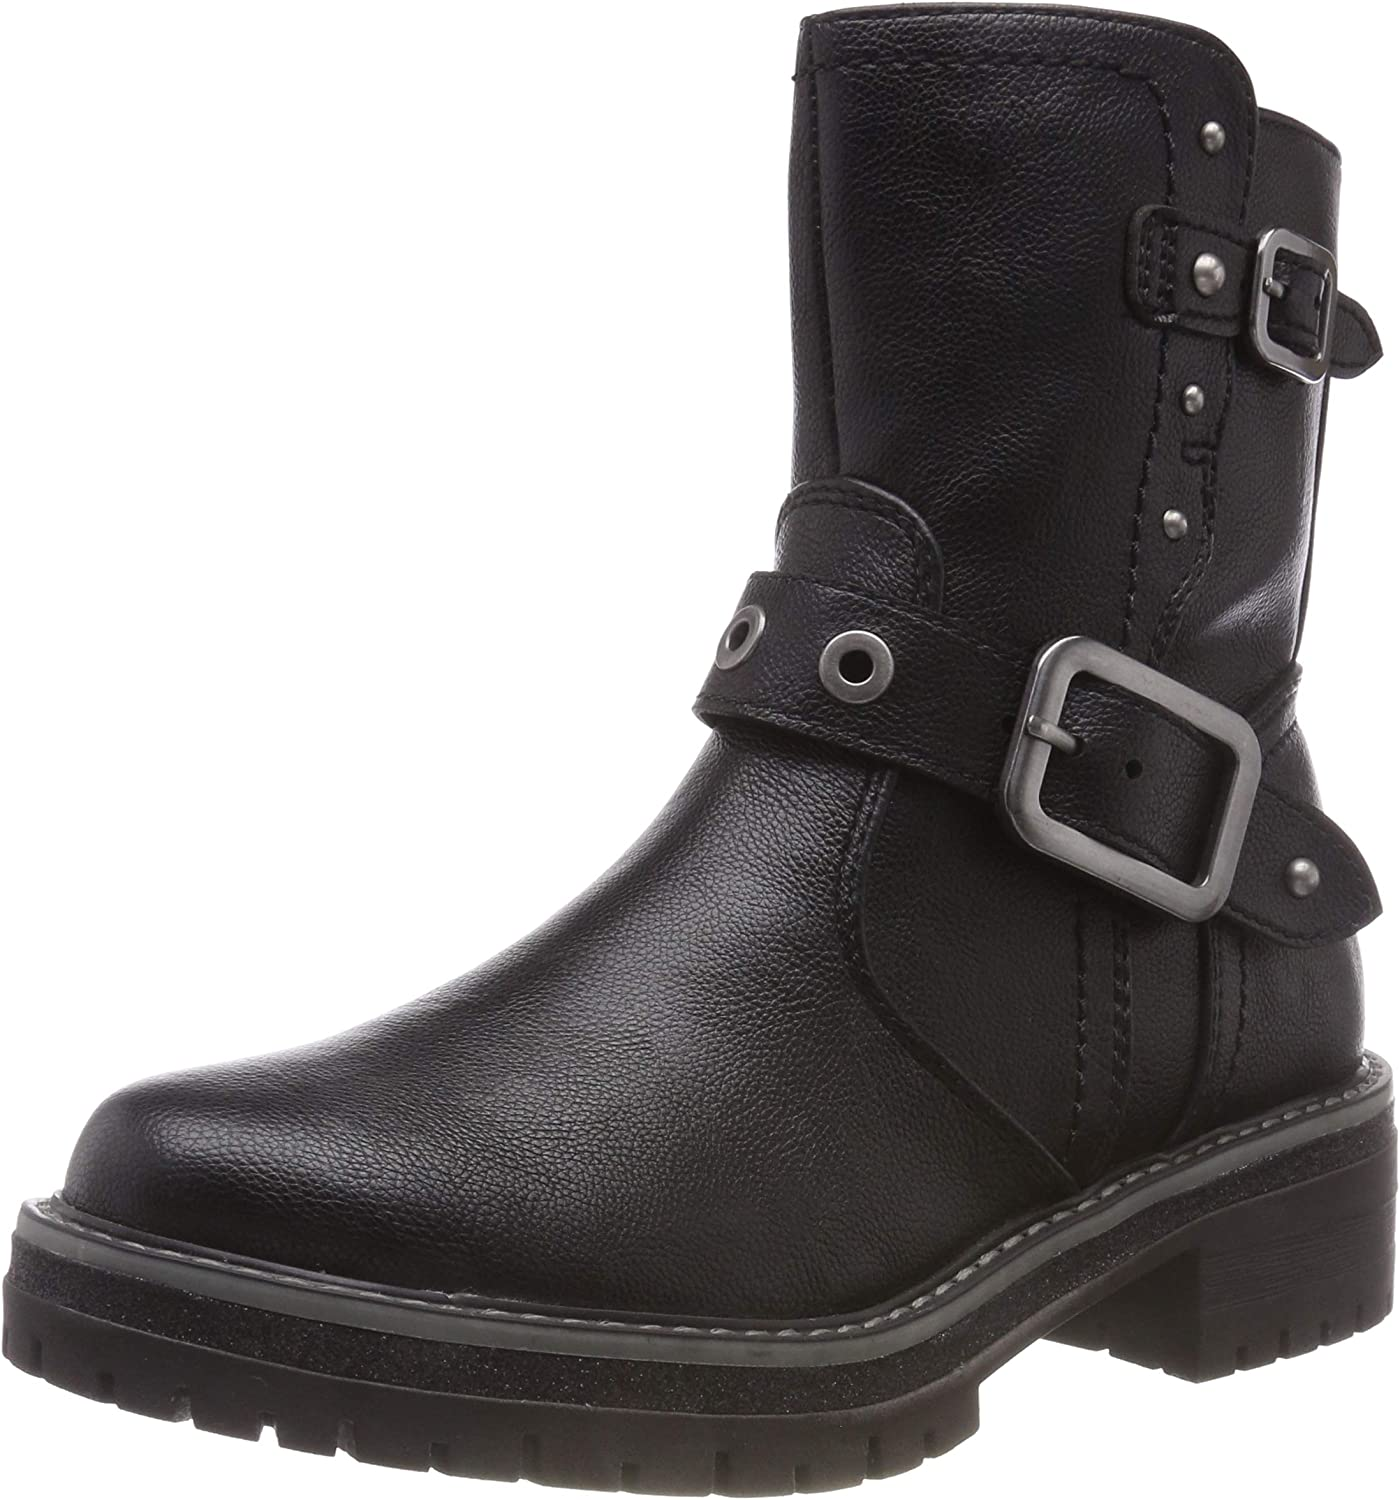 Jana Gifts Women's 8-8-25310-21 security Ankle 001 Boots